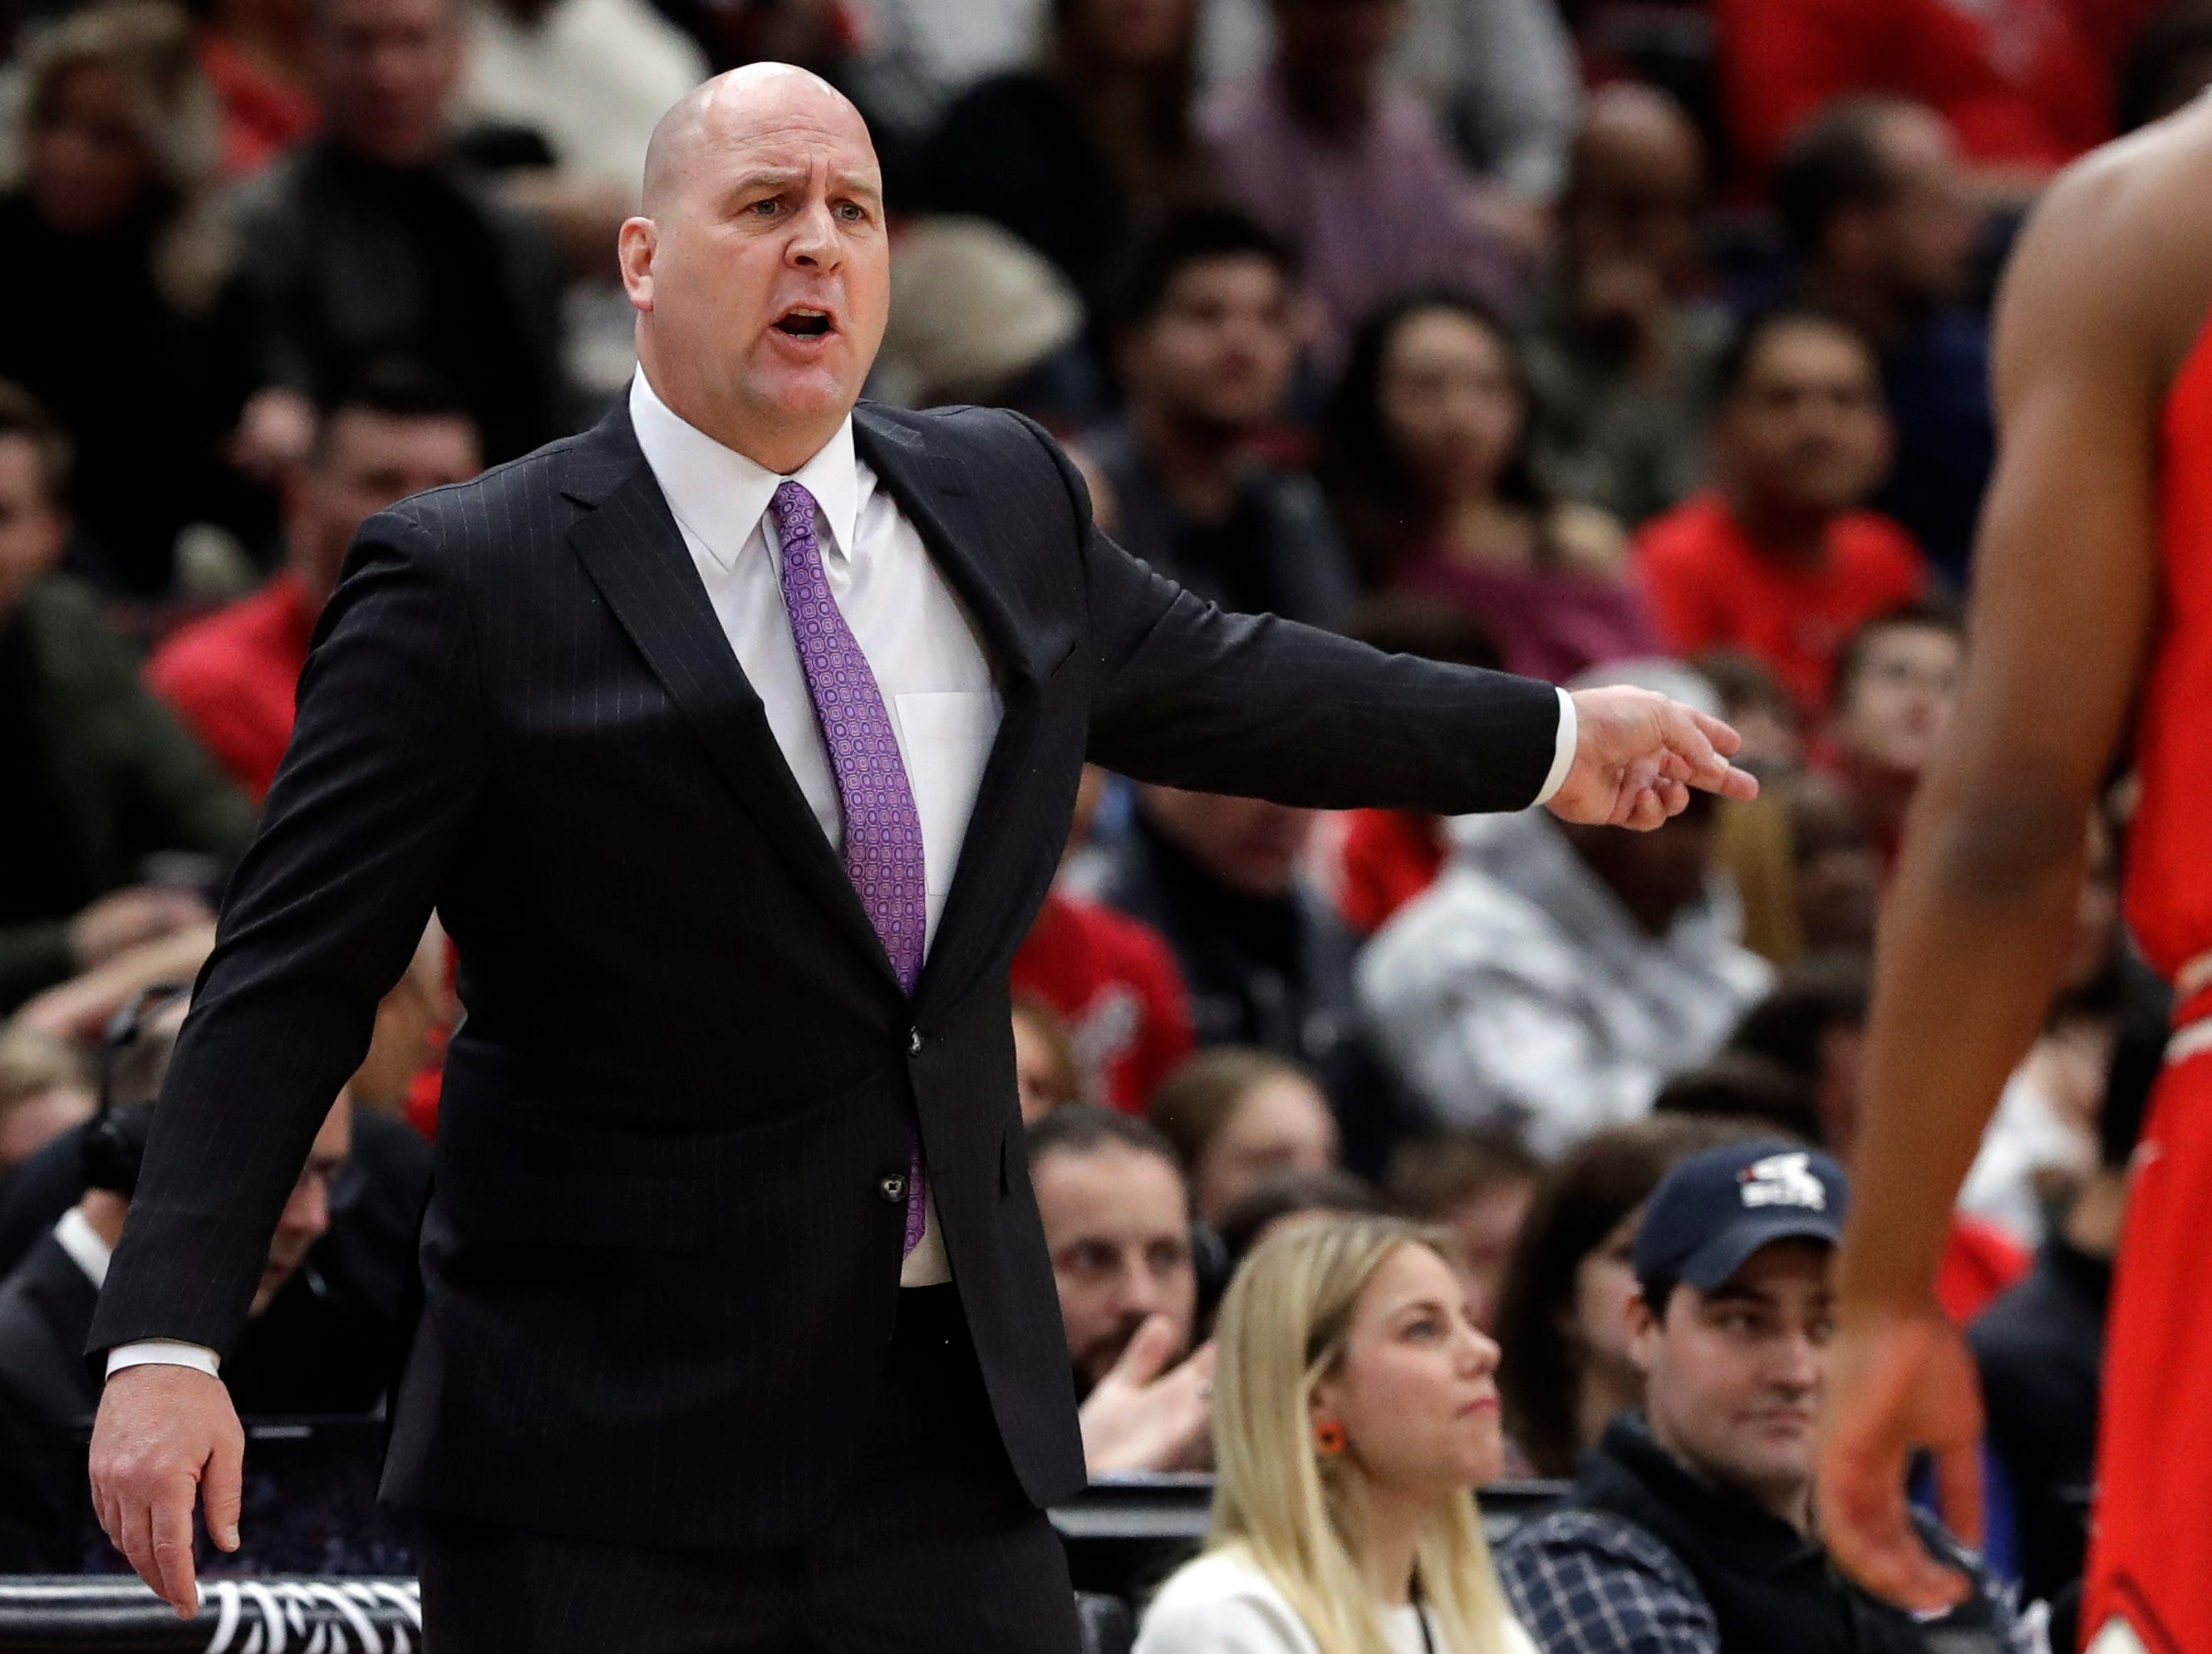 Chicago Bulls coach Jim Boylen stands near the bench during the first half of the team's NBA basketball game against the Detroit Pistons, Friday, March 8, 2019, in Chicago.